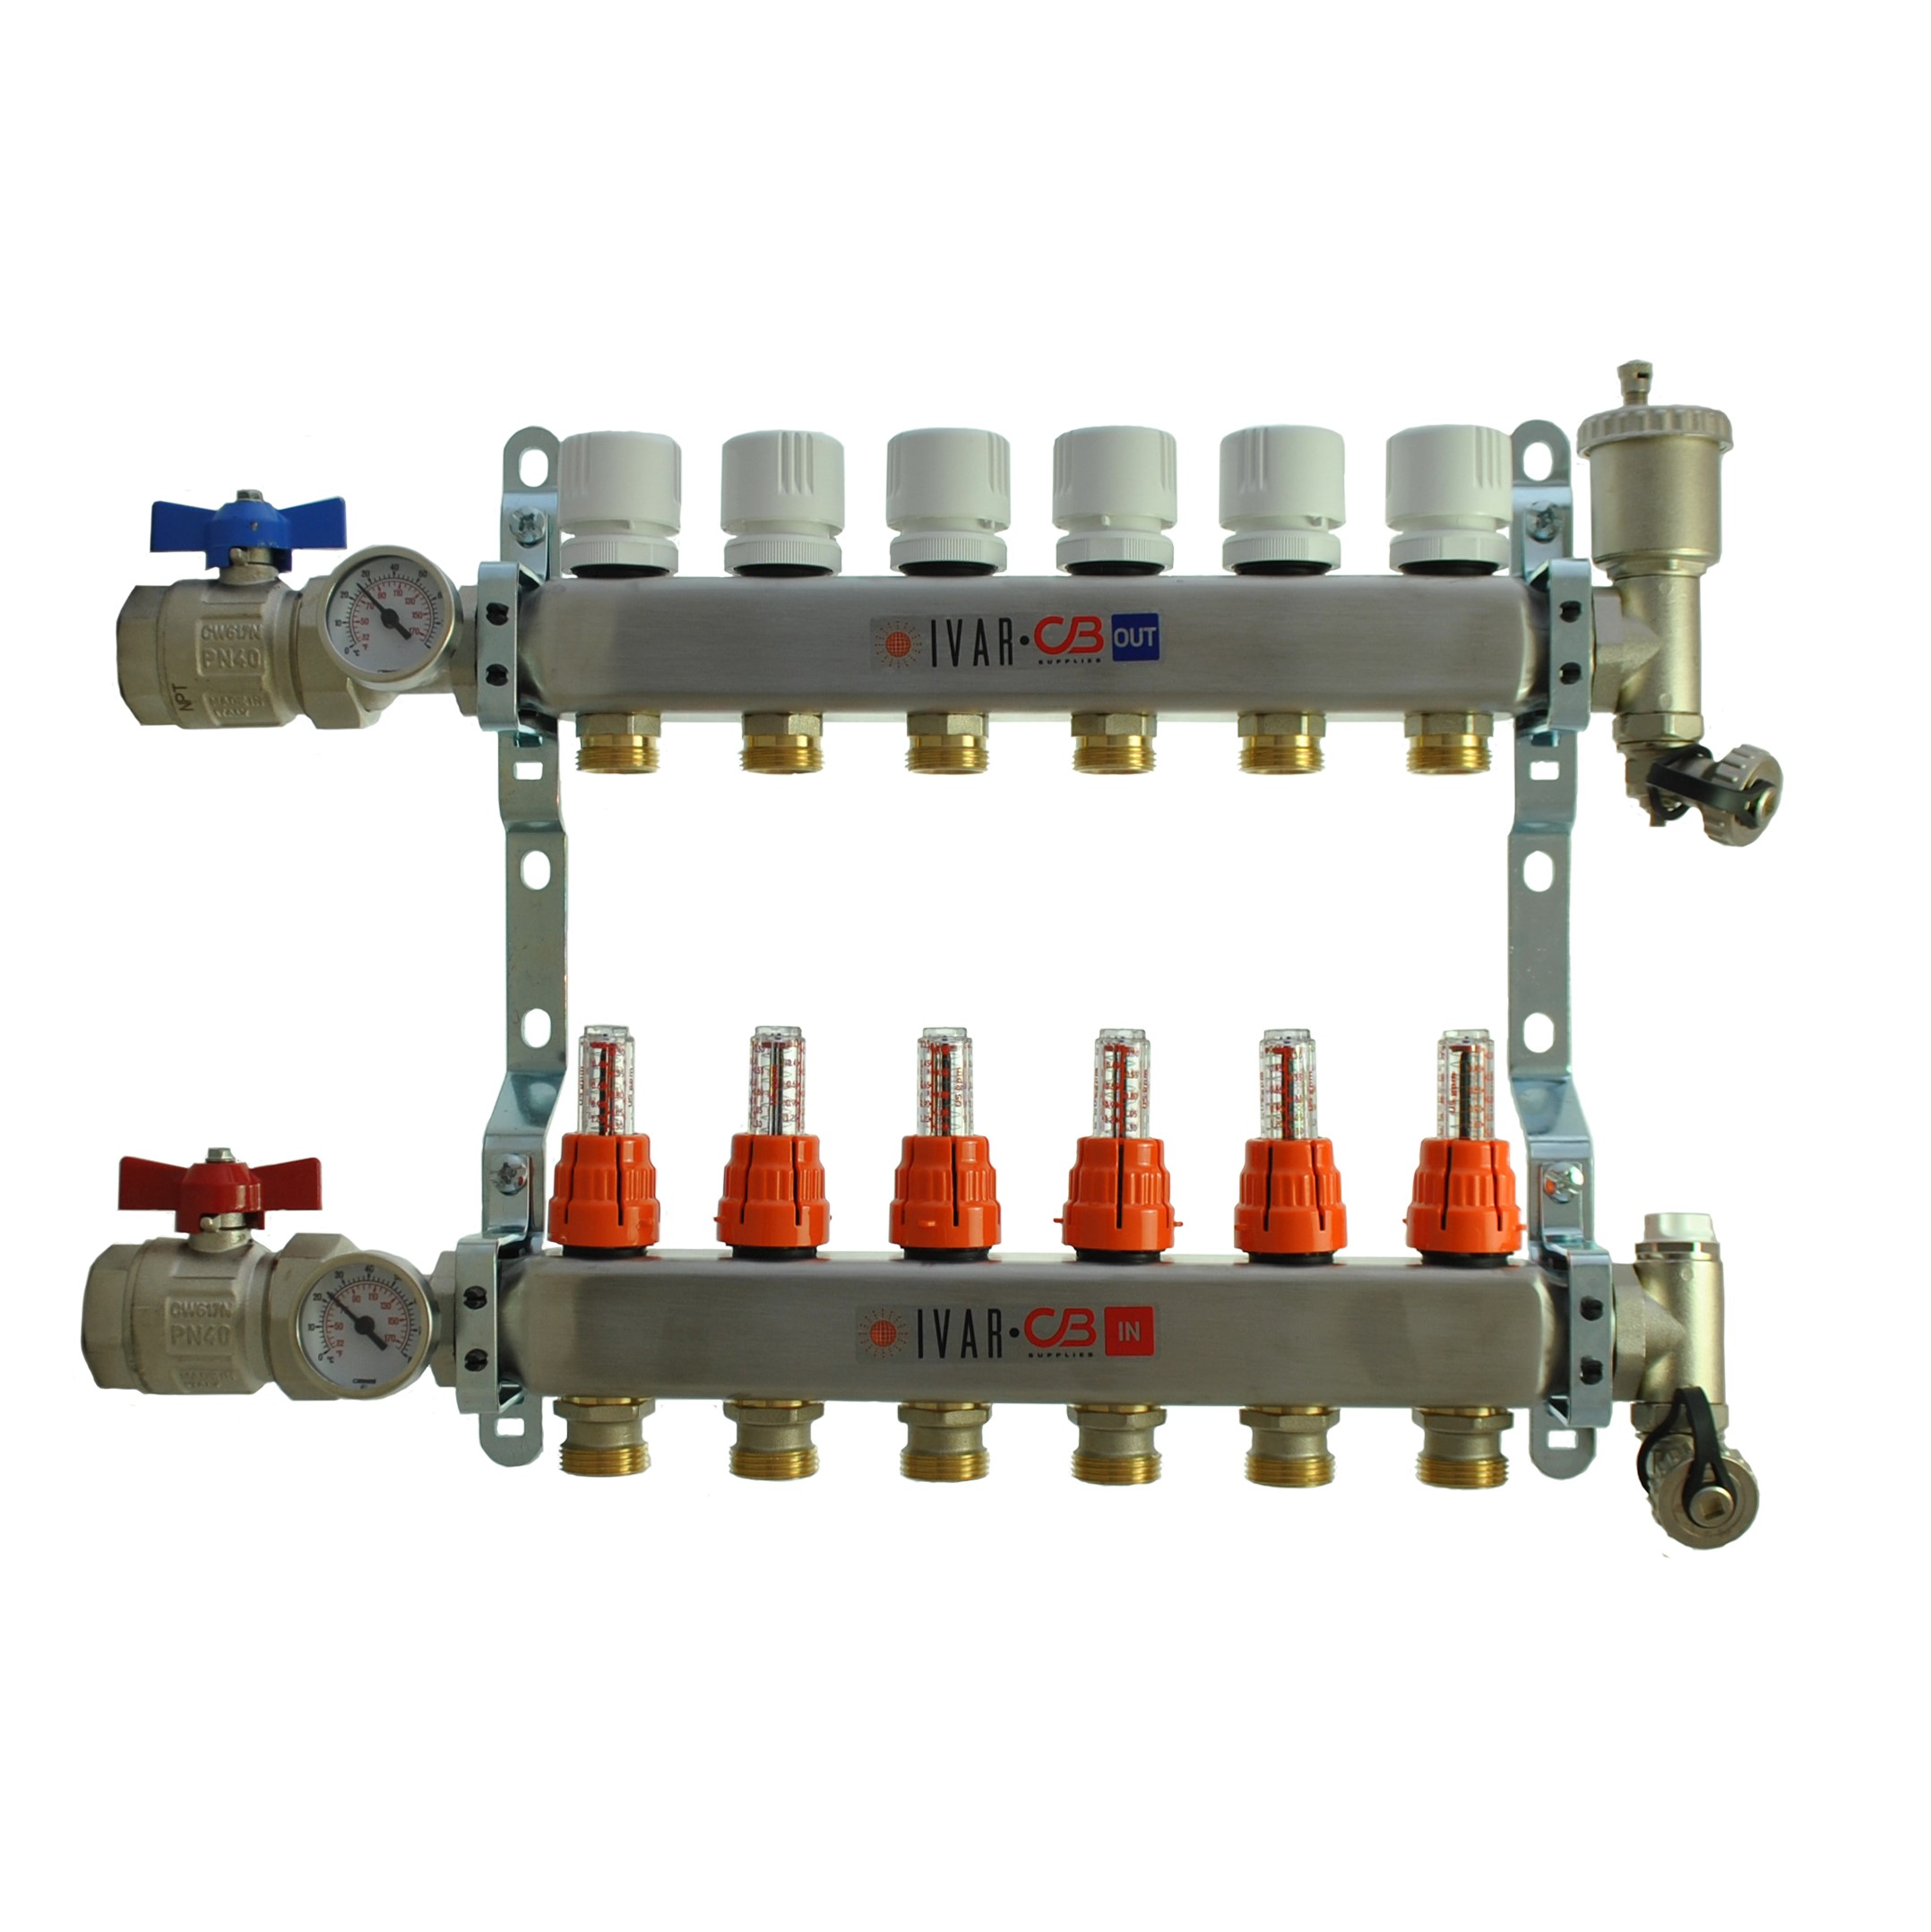 "1"" IVAR Stainless Steel Hydronic Manifold for Radiant Floor Heating - 6 ports"